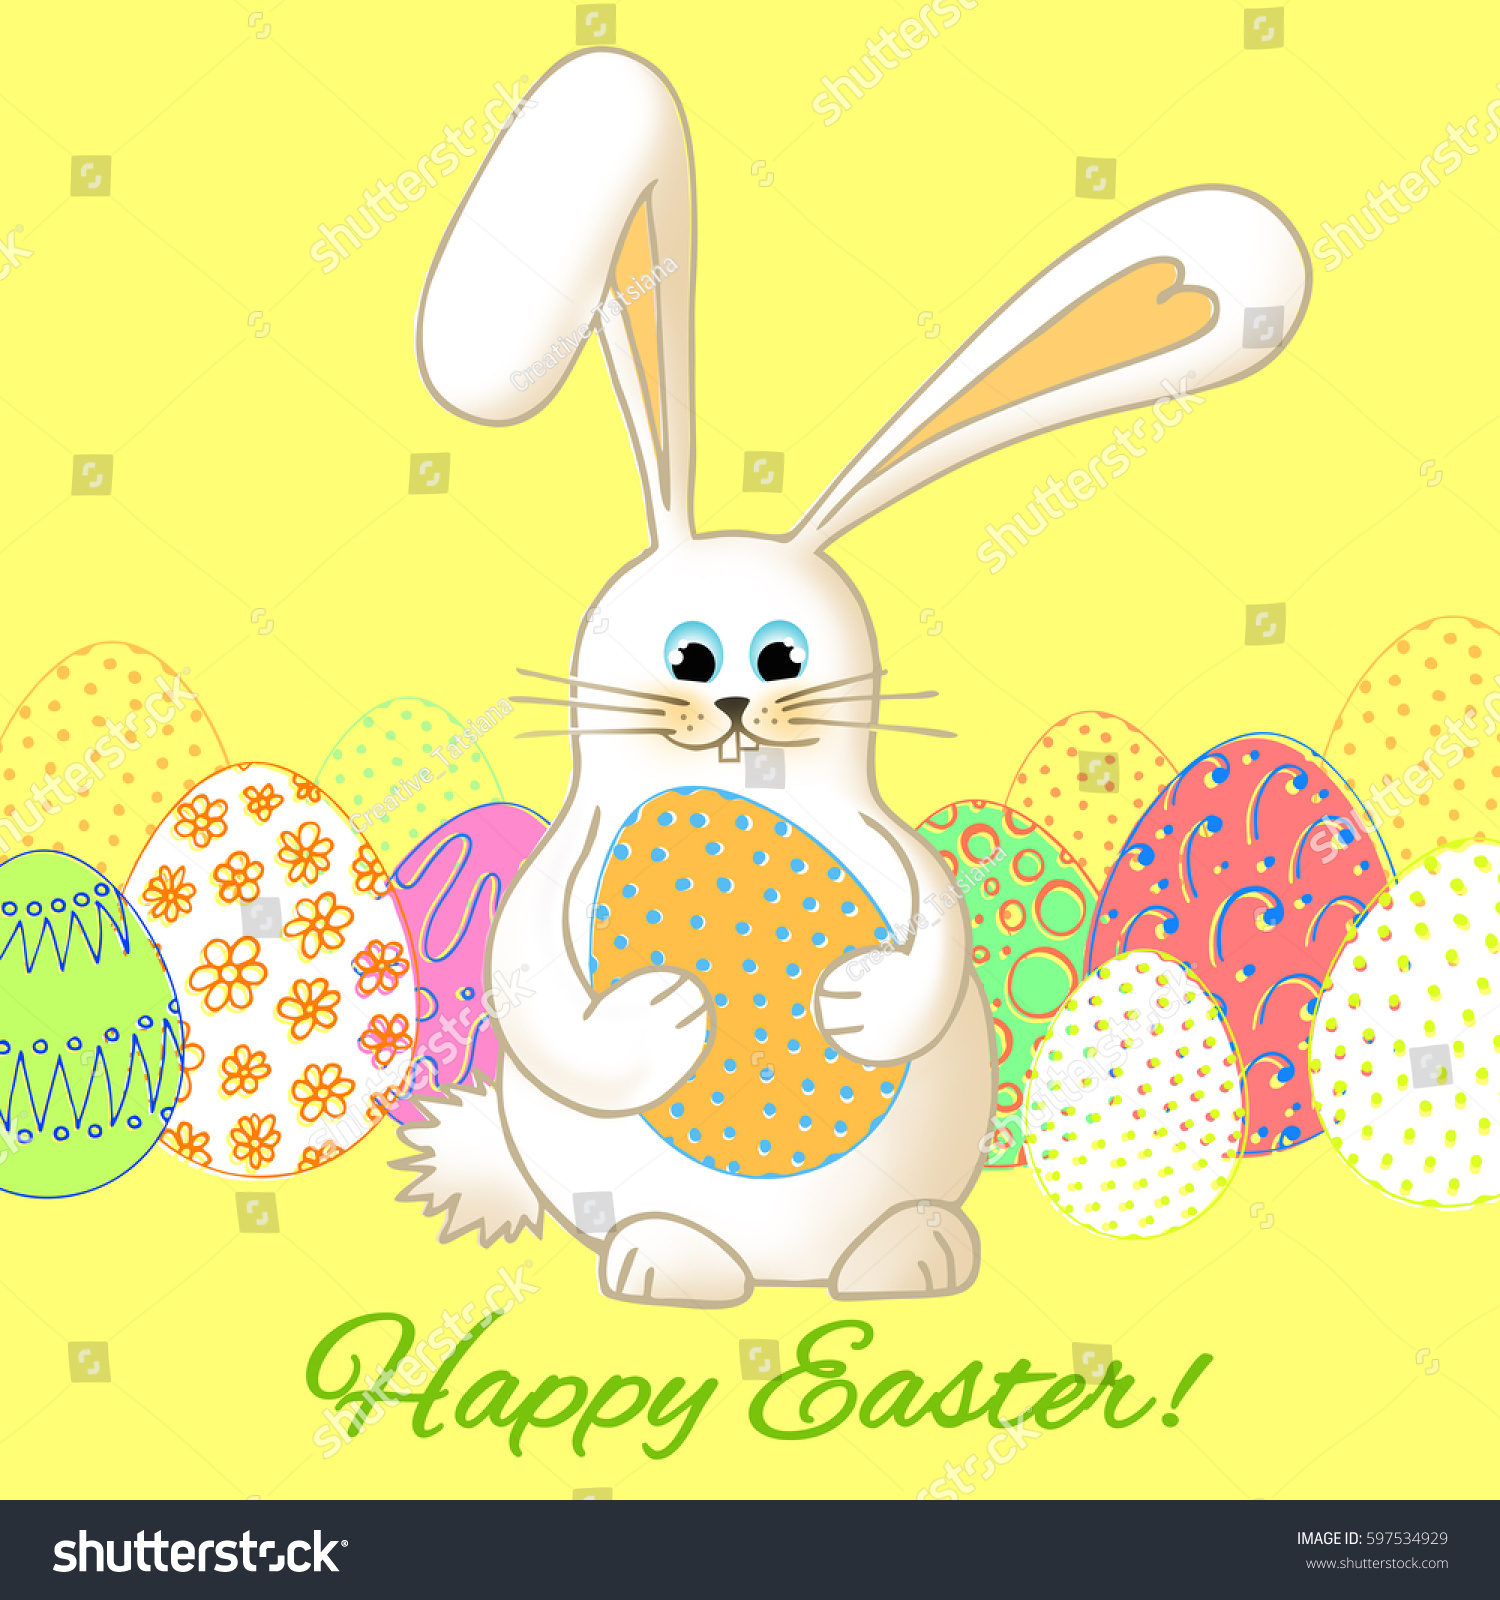 Cute Easter Bunny Beautiful Postcard Template Stock Illustration